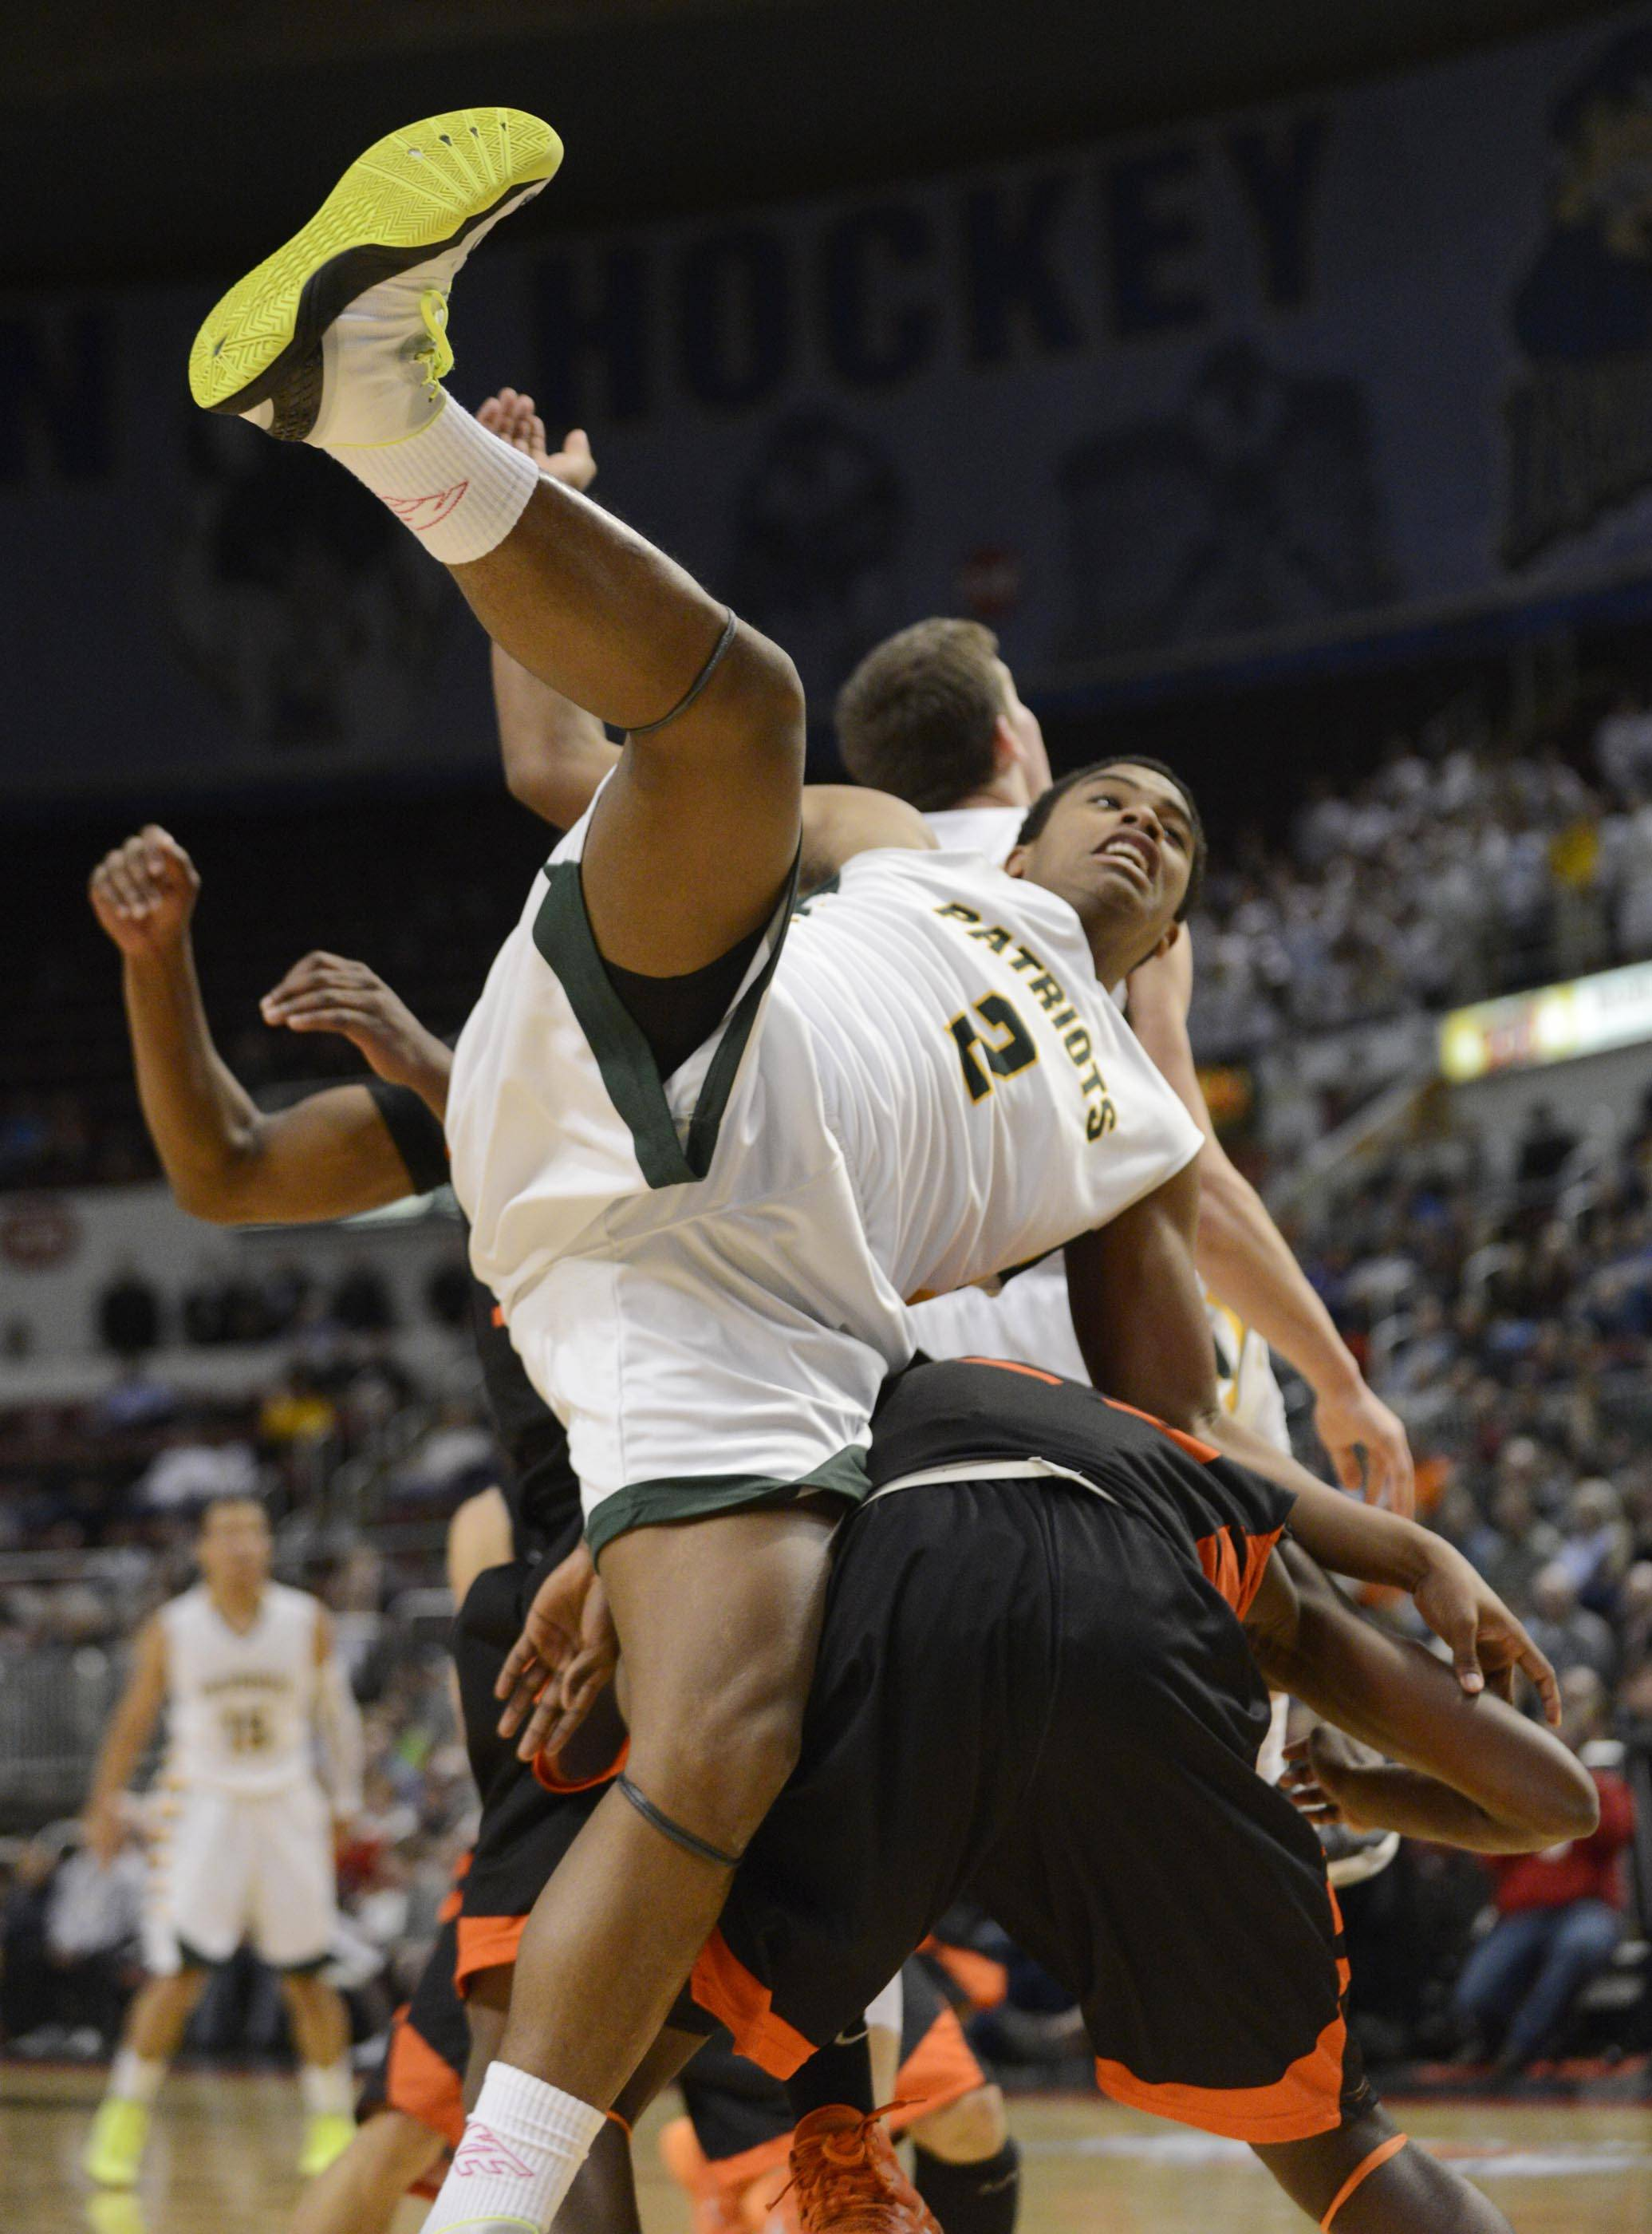 Images from the Class 4A state third place boys basketball game at Carver Arena in Peoria on Saturday, March 22, 2014.